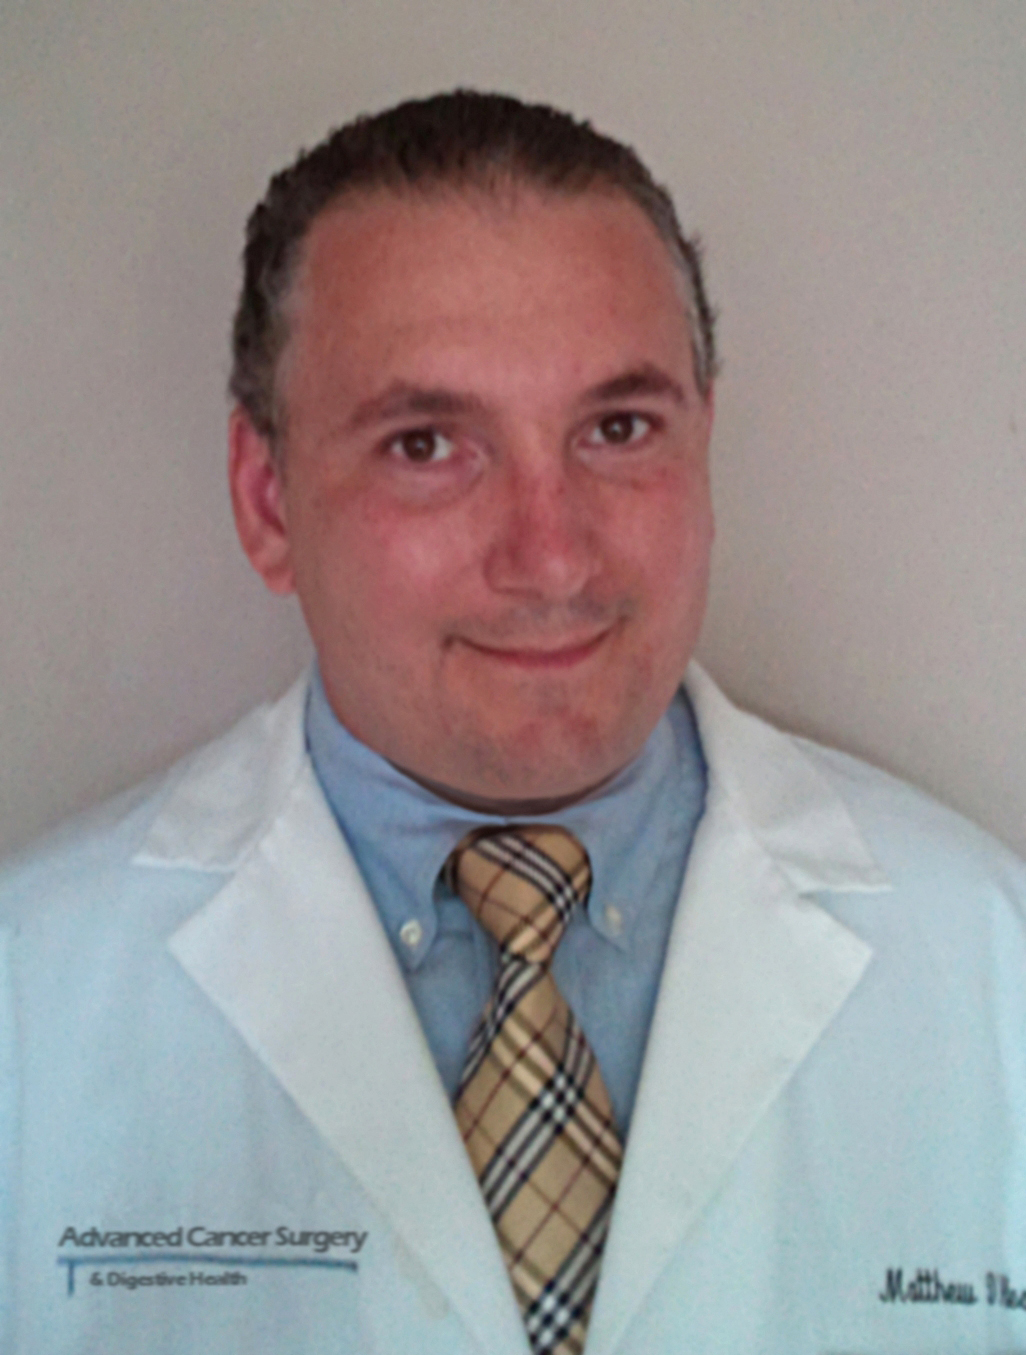 meet matthew j d alessio m d bethesda hospital east matthew j d alessio m d brings expertise in the areas of surgical oncology and minimally invasive surgery to palm beach county and the south florida